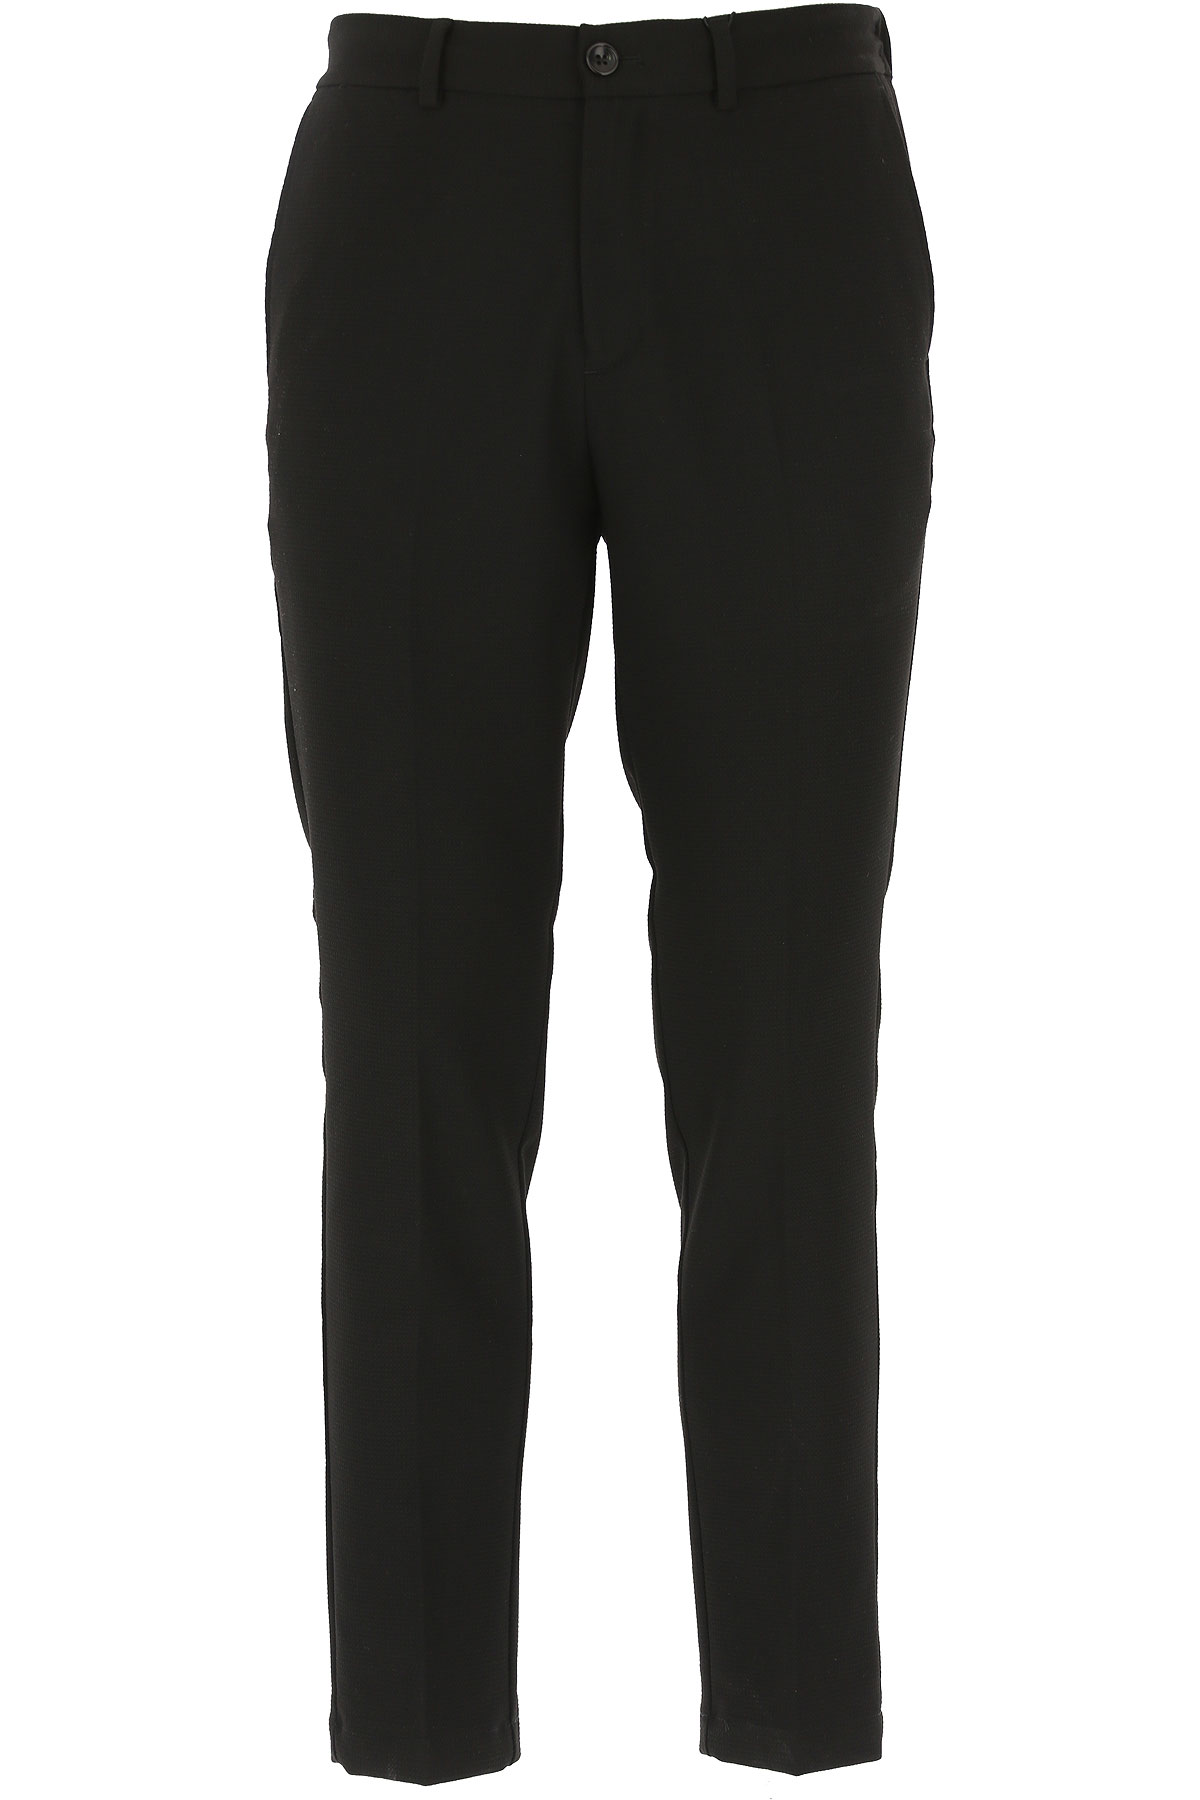 Selected Pants for Men On Sale in Outlet, Black, polyester, 2019, 30 32 34 36